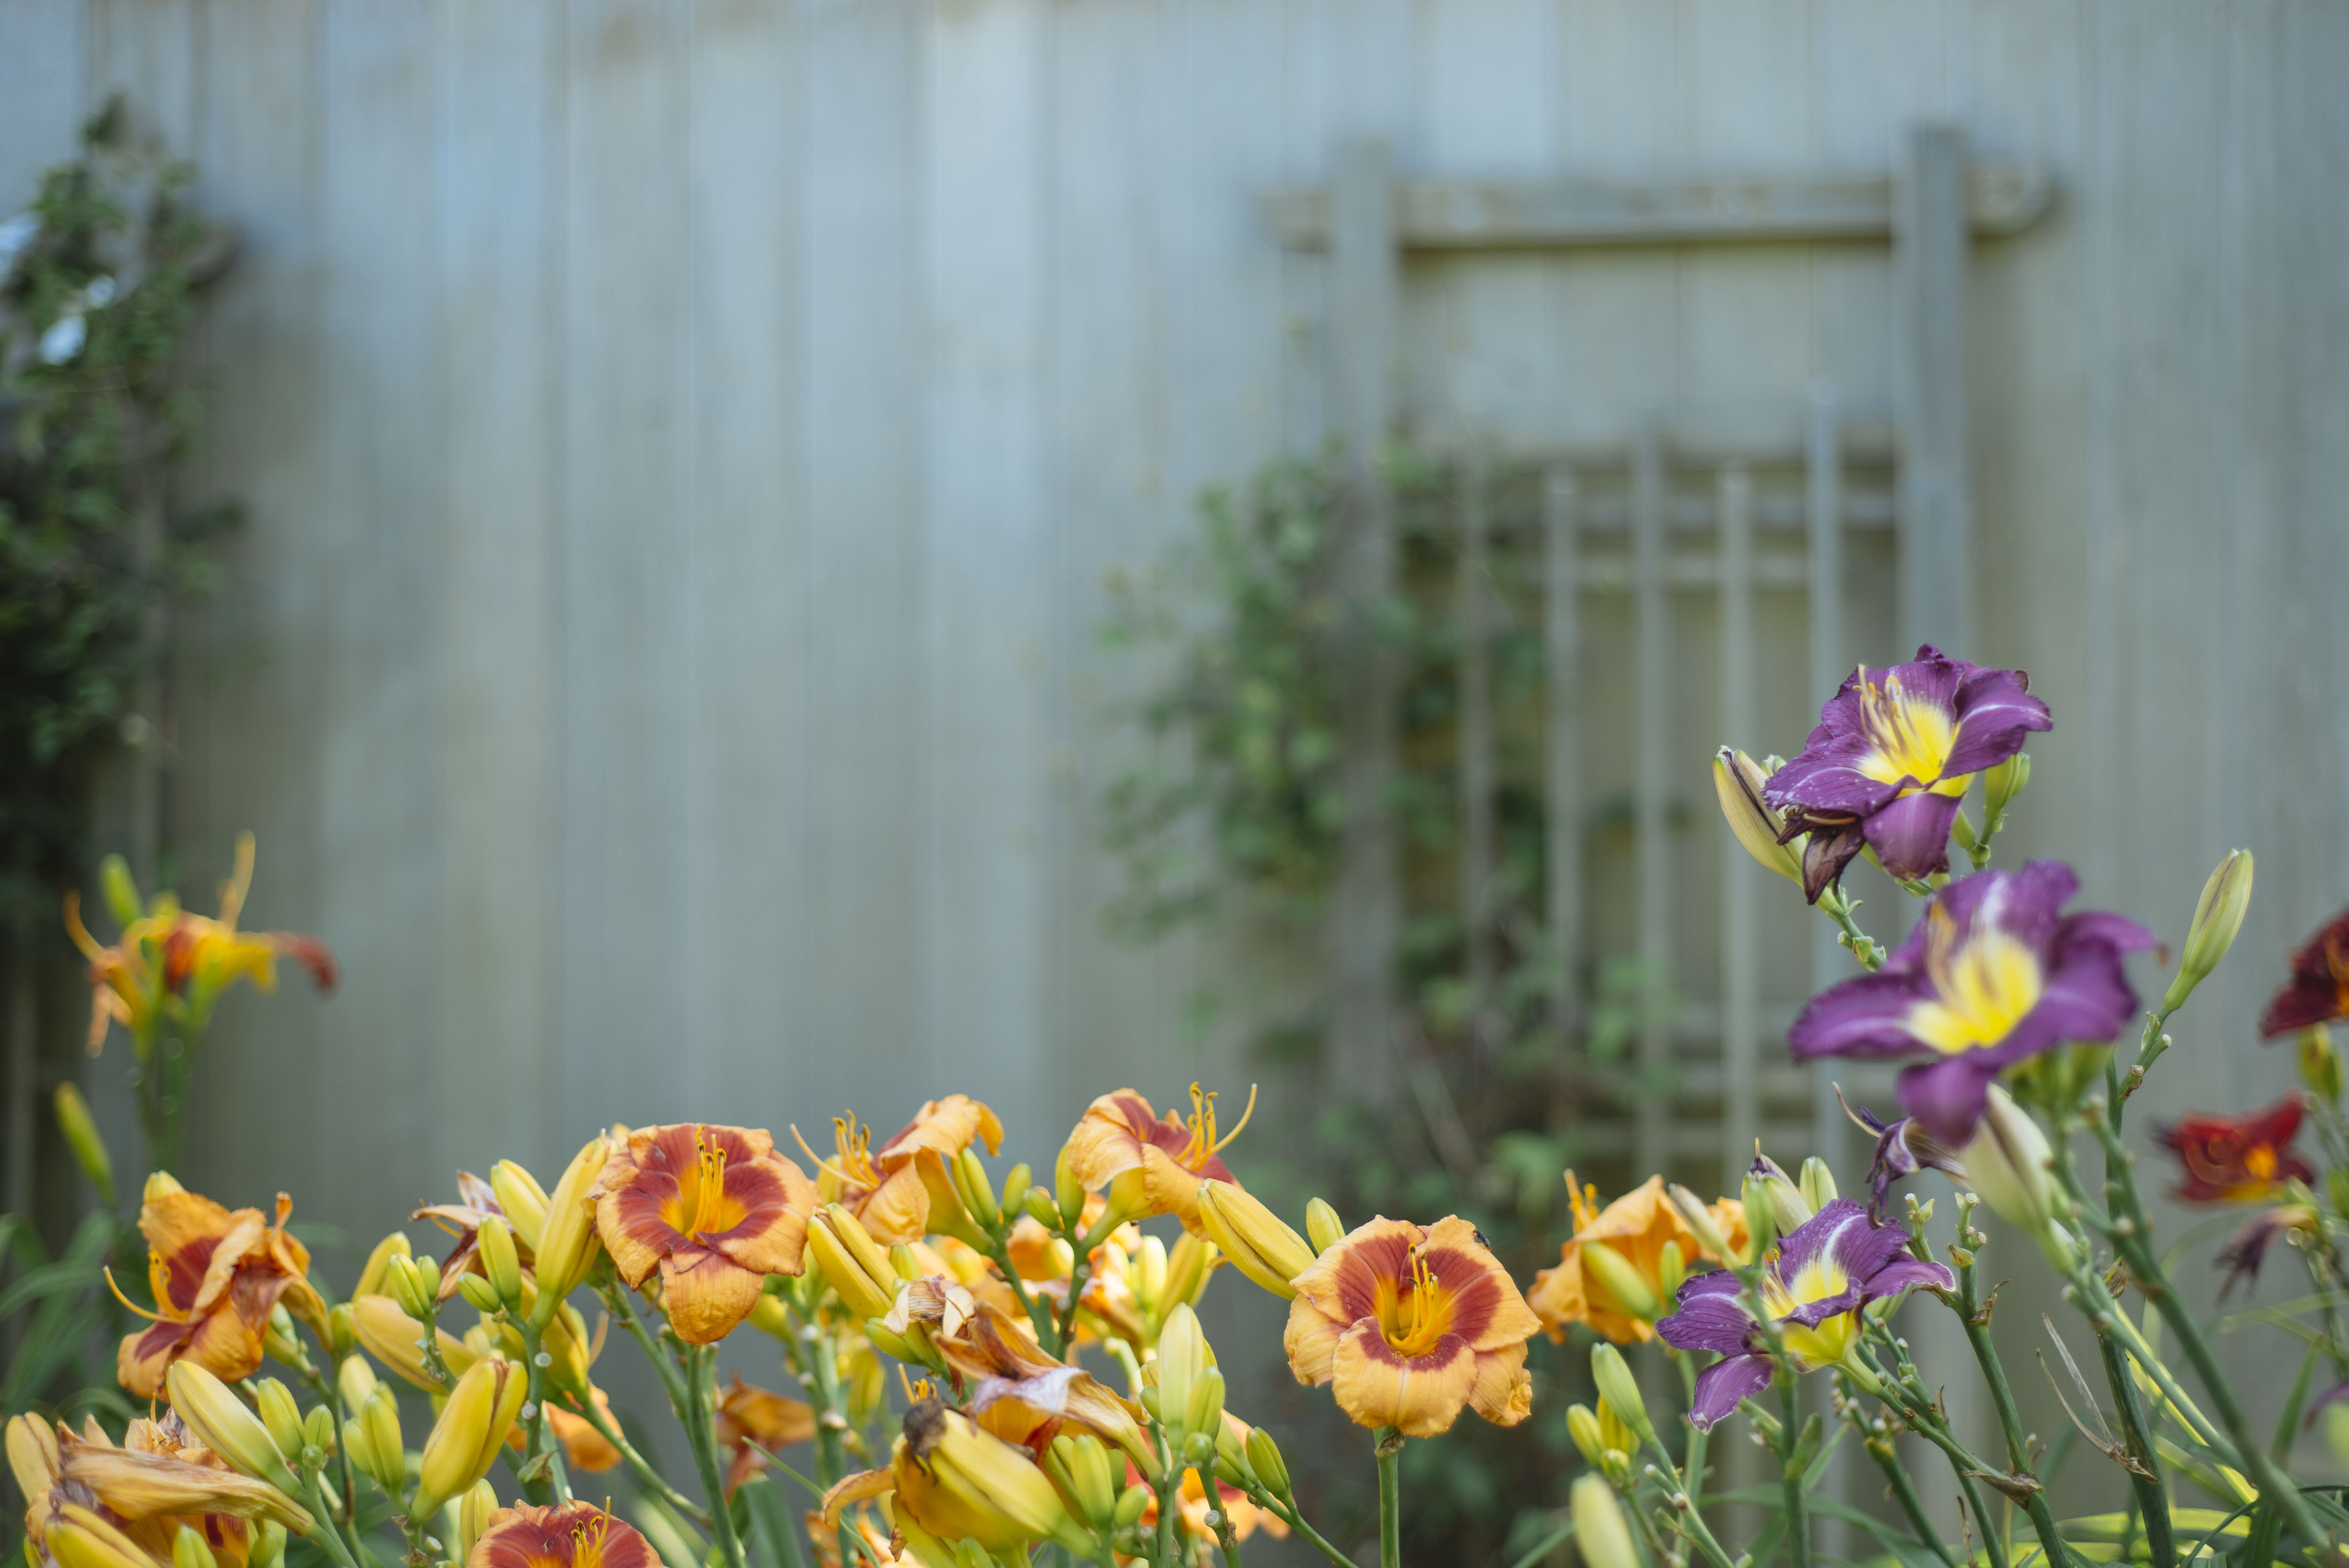 Orange and purple flowers in bloom with a wooden wall in the background